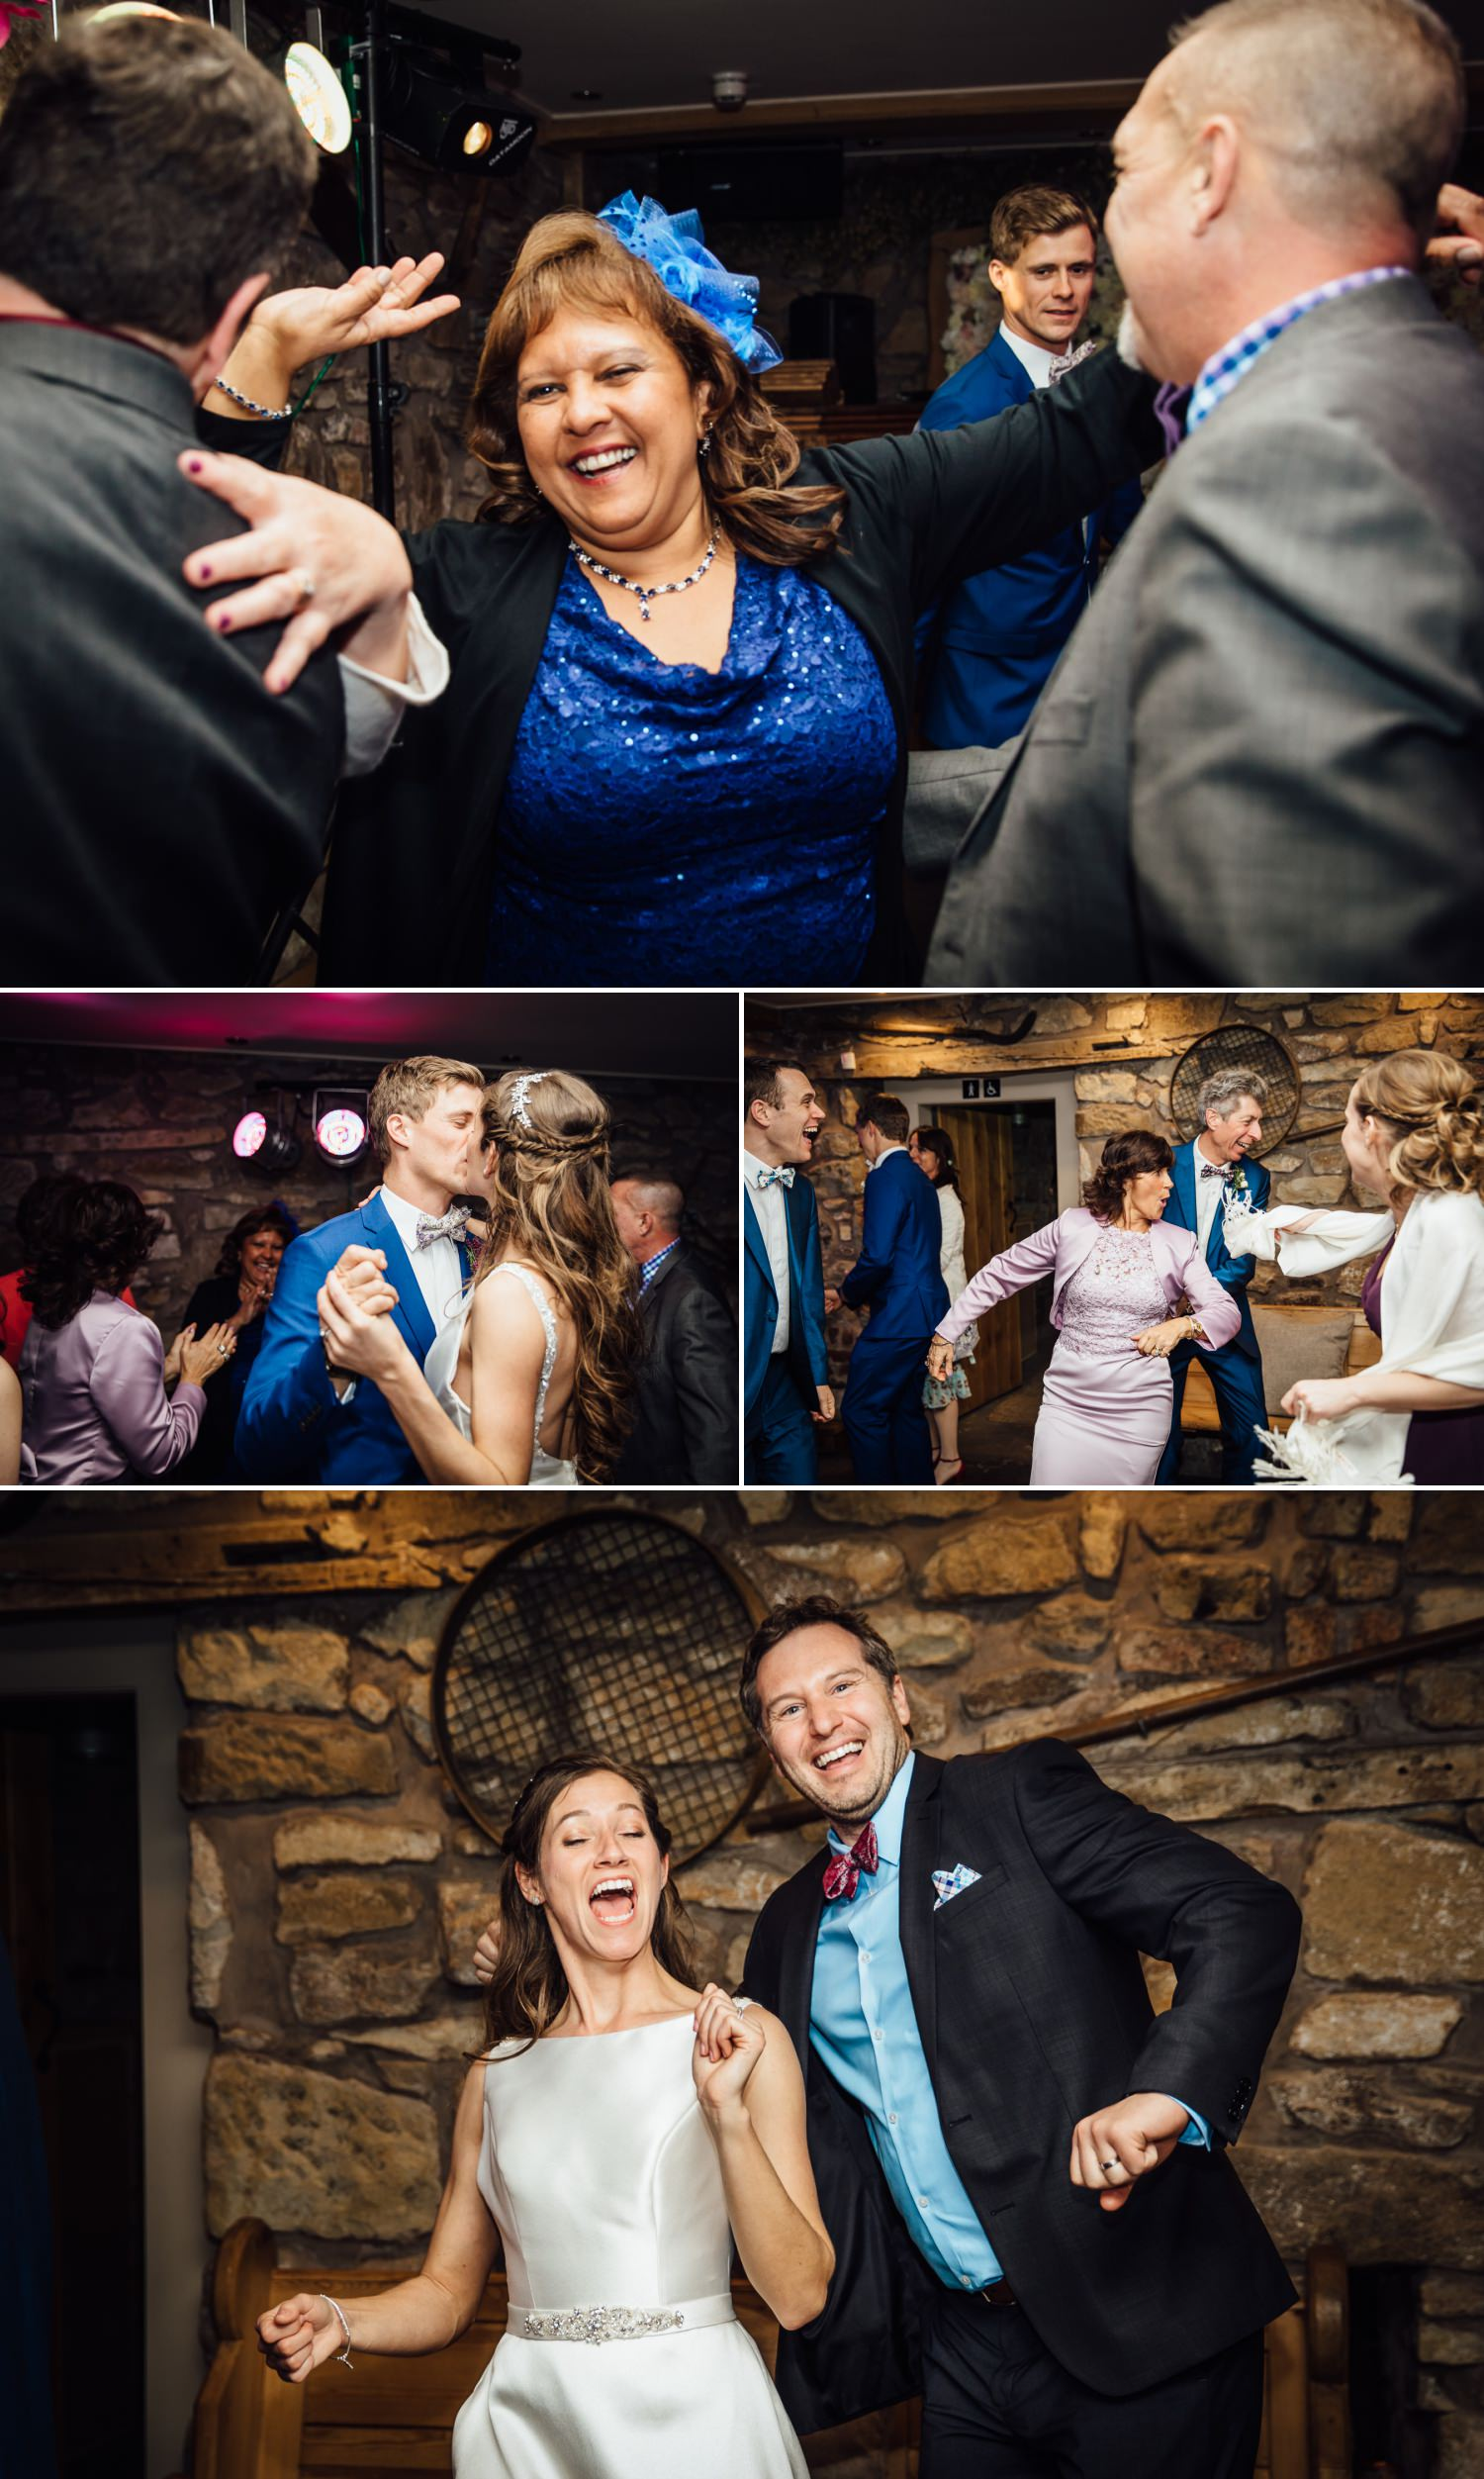 Wedding photography guests dancing in Tower Hill Barns